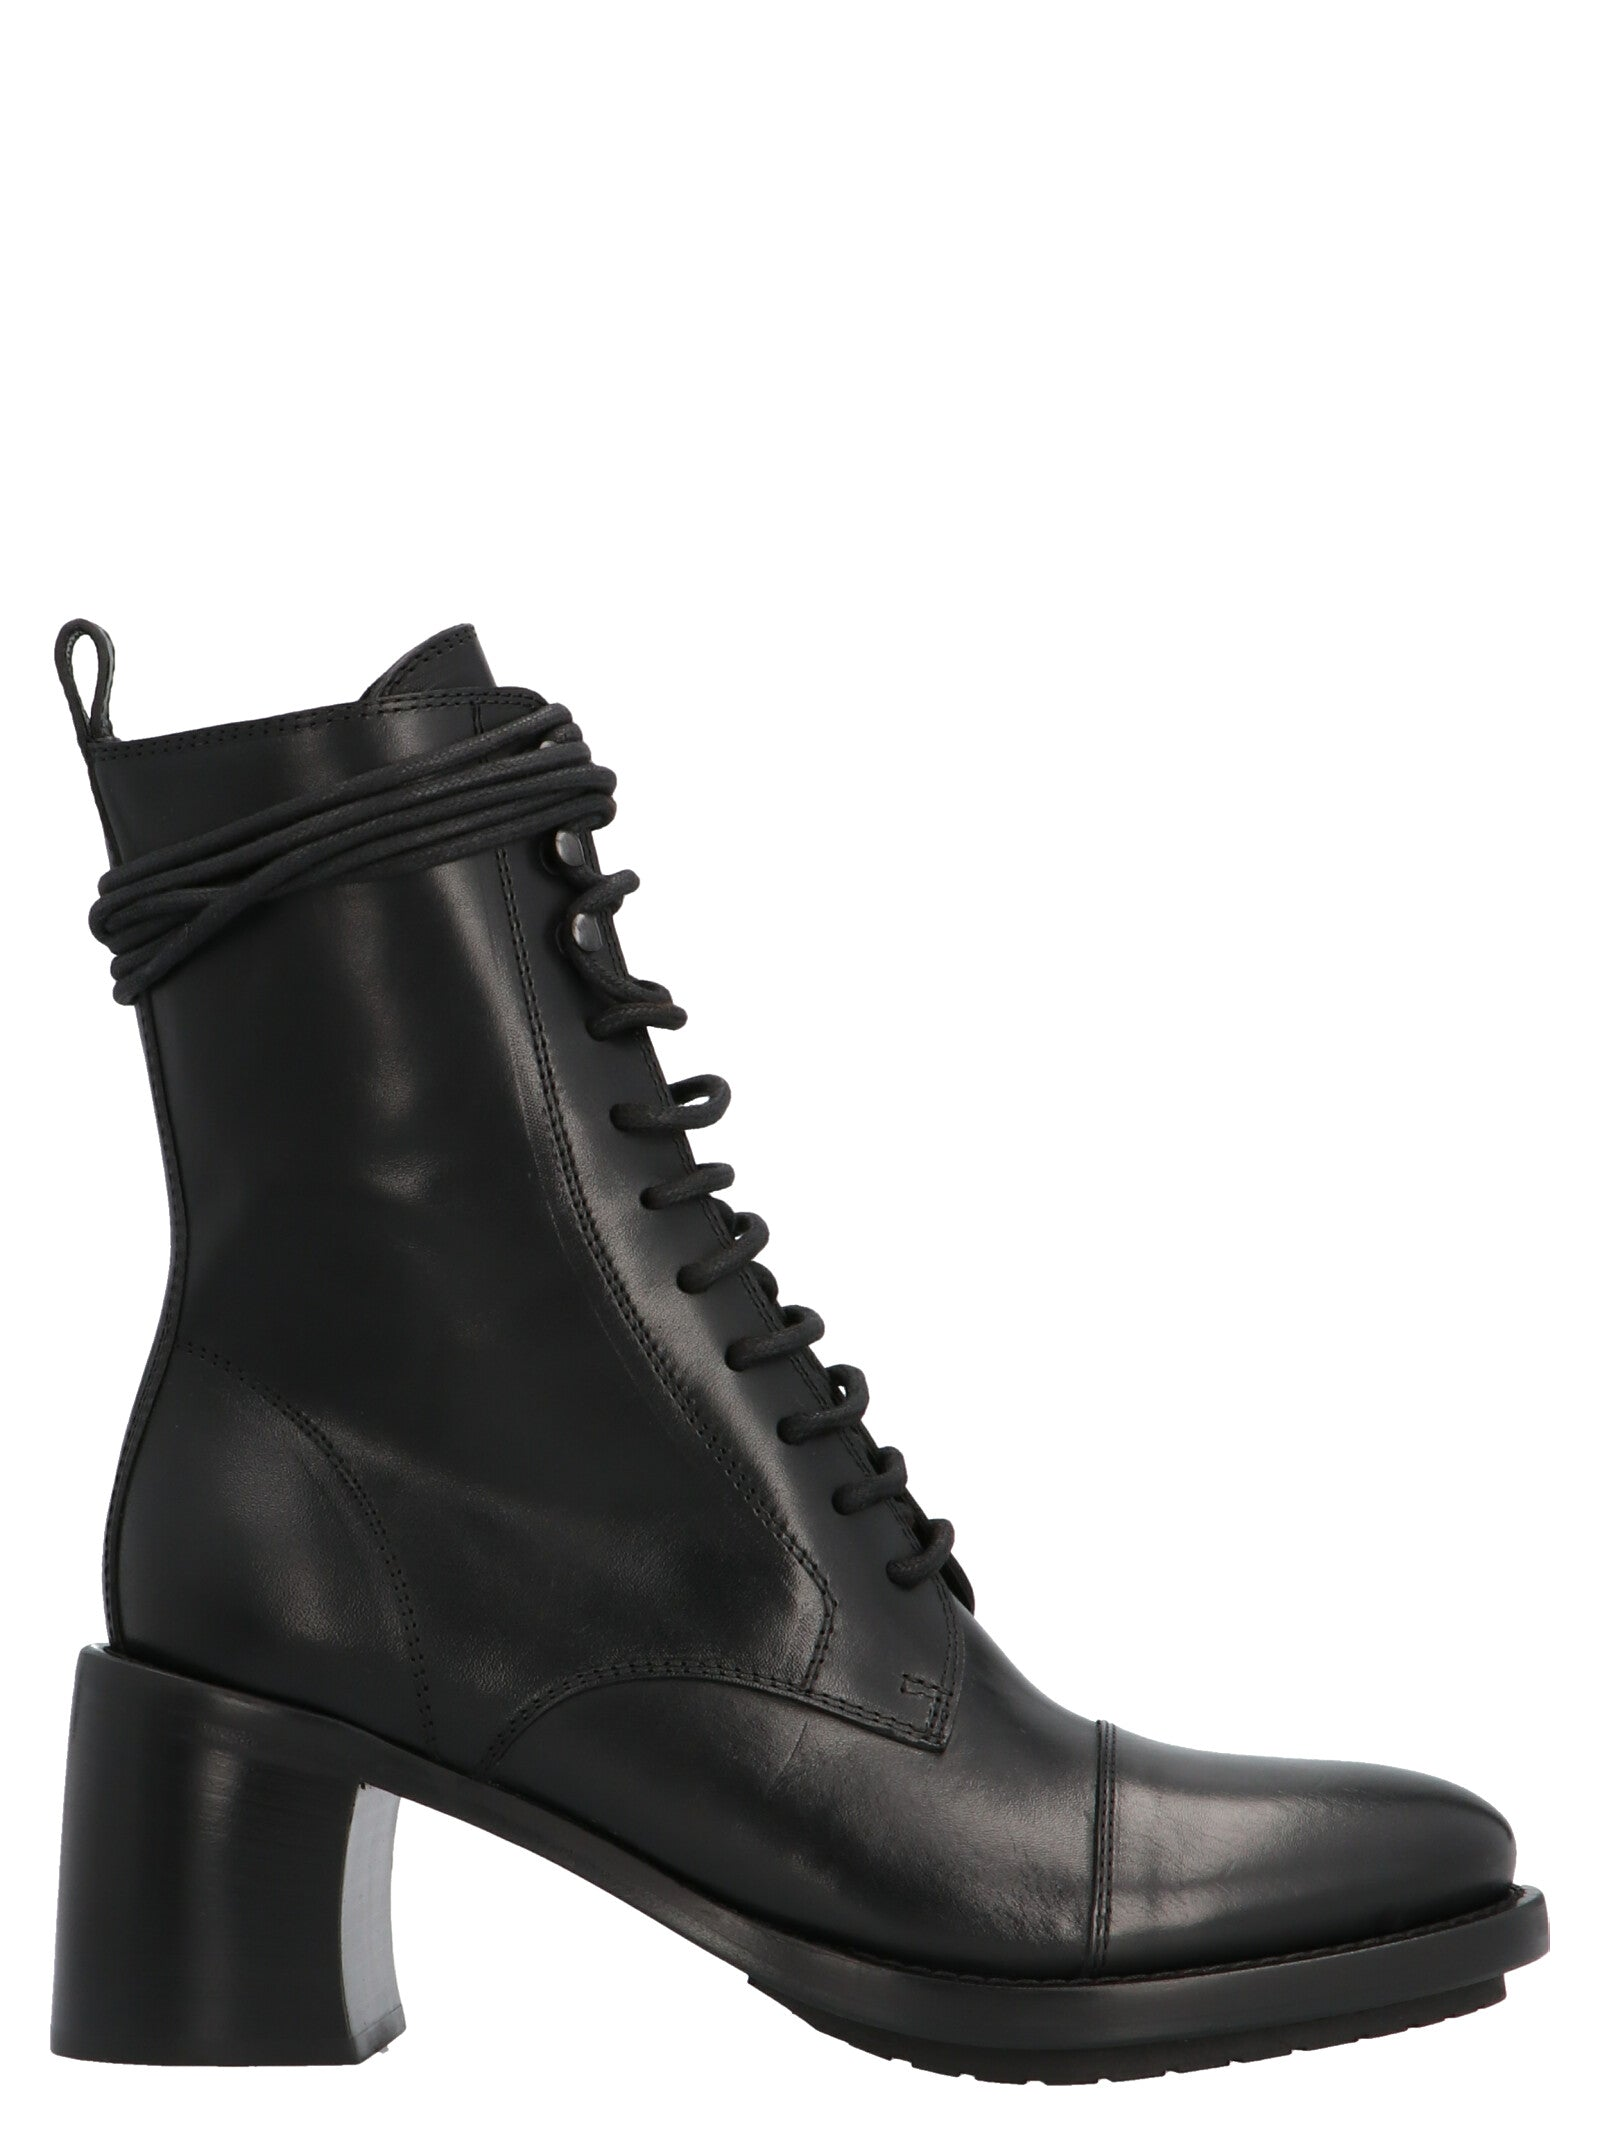 Ann Demeulemeester Leathers ANN DEMEULEMEESTER TUCSON BOOTS